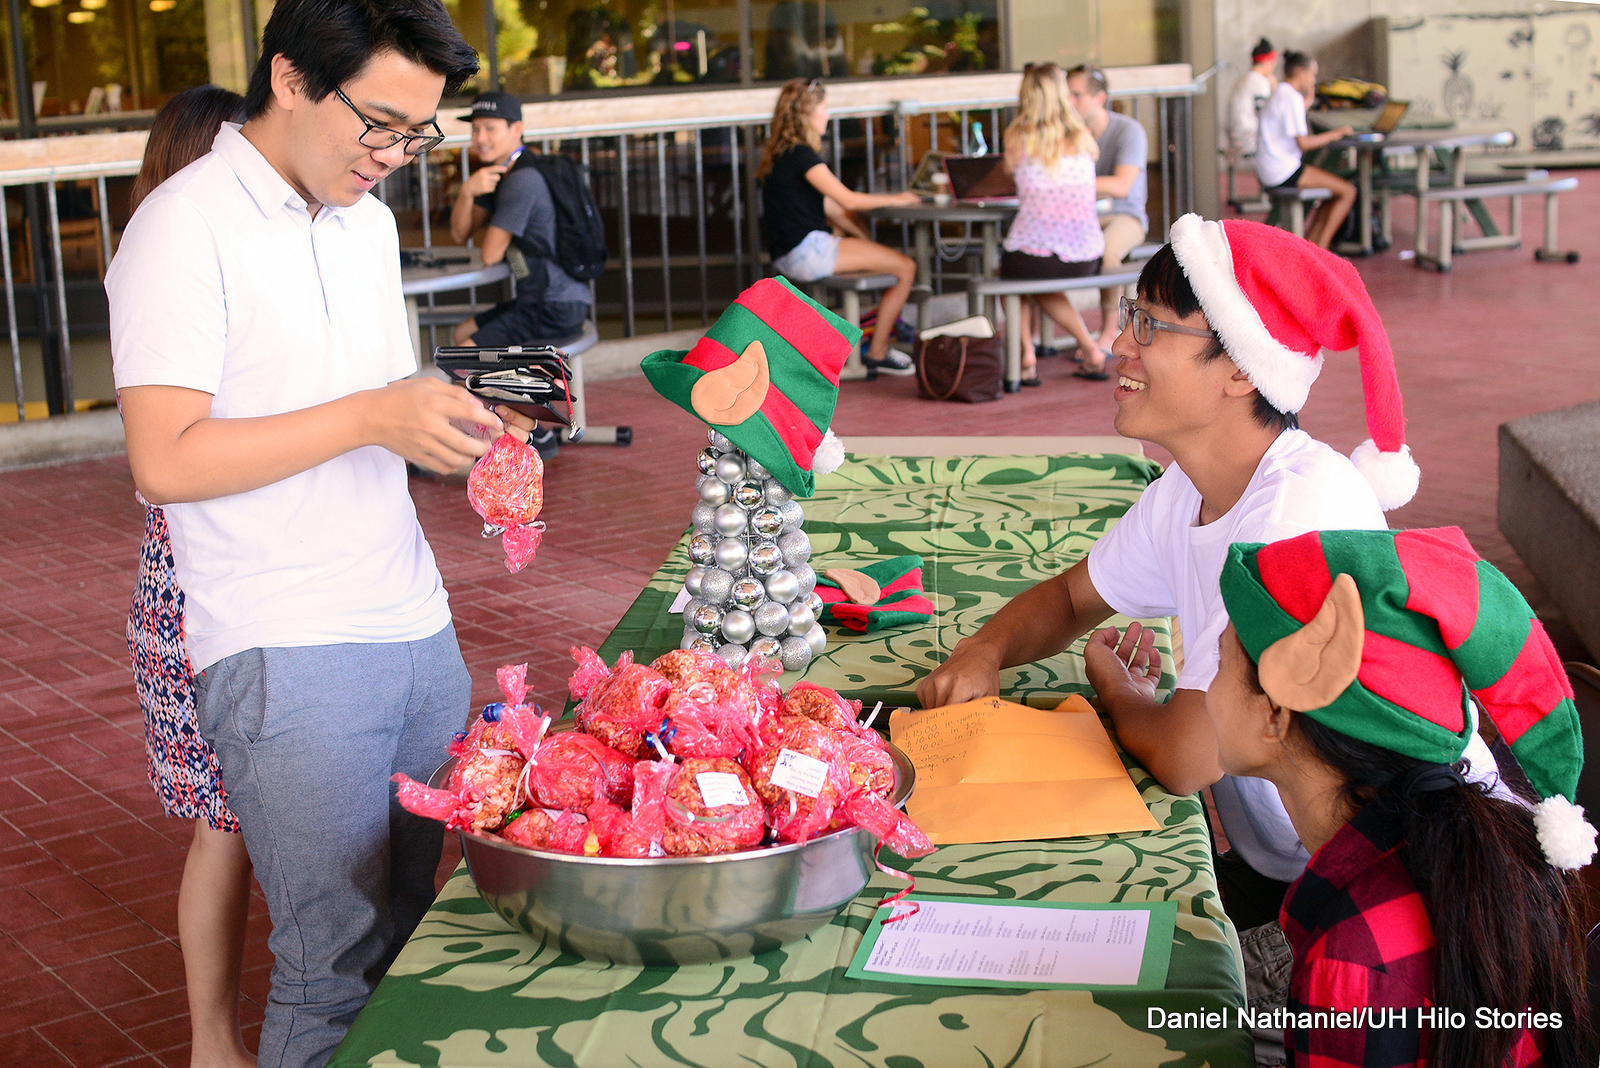 Two students in Santa hats helping someone buy some cookies.